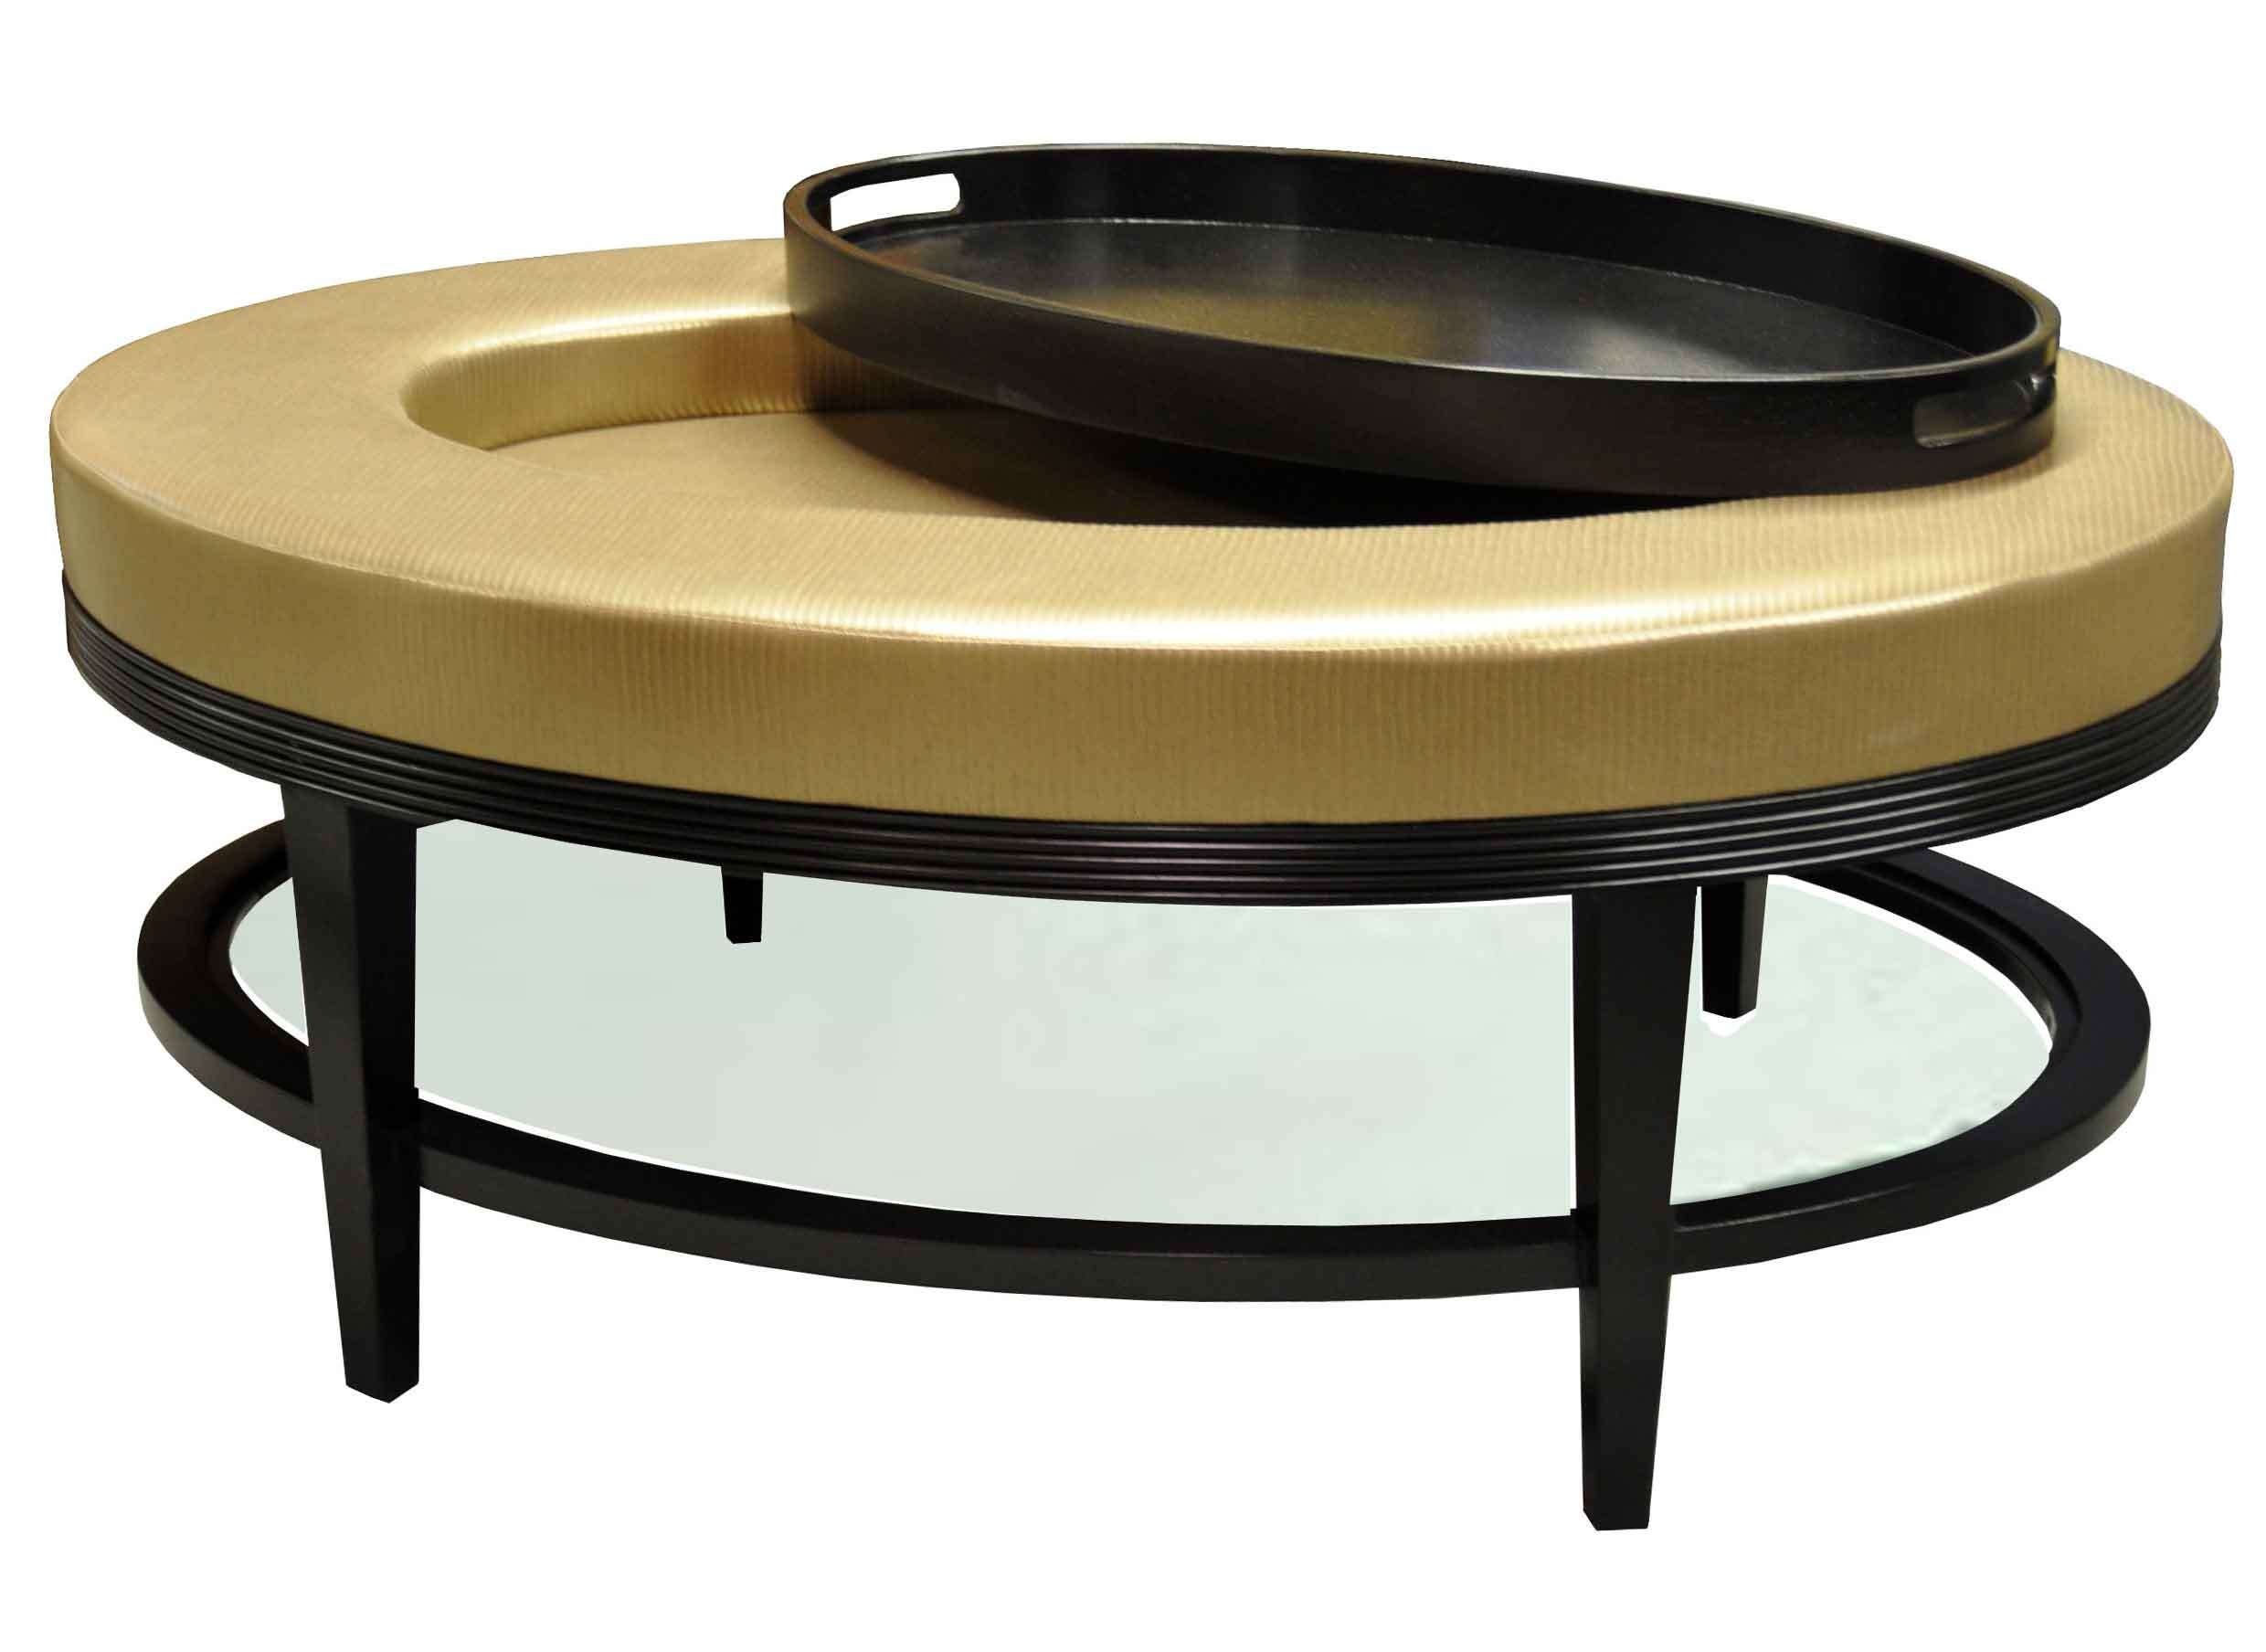 Light Gold Color Round Faux Leather Ottoman Coffe Table With With Regard To Preferred Round Tray Coffee Tables (View 12 of 20)